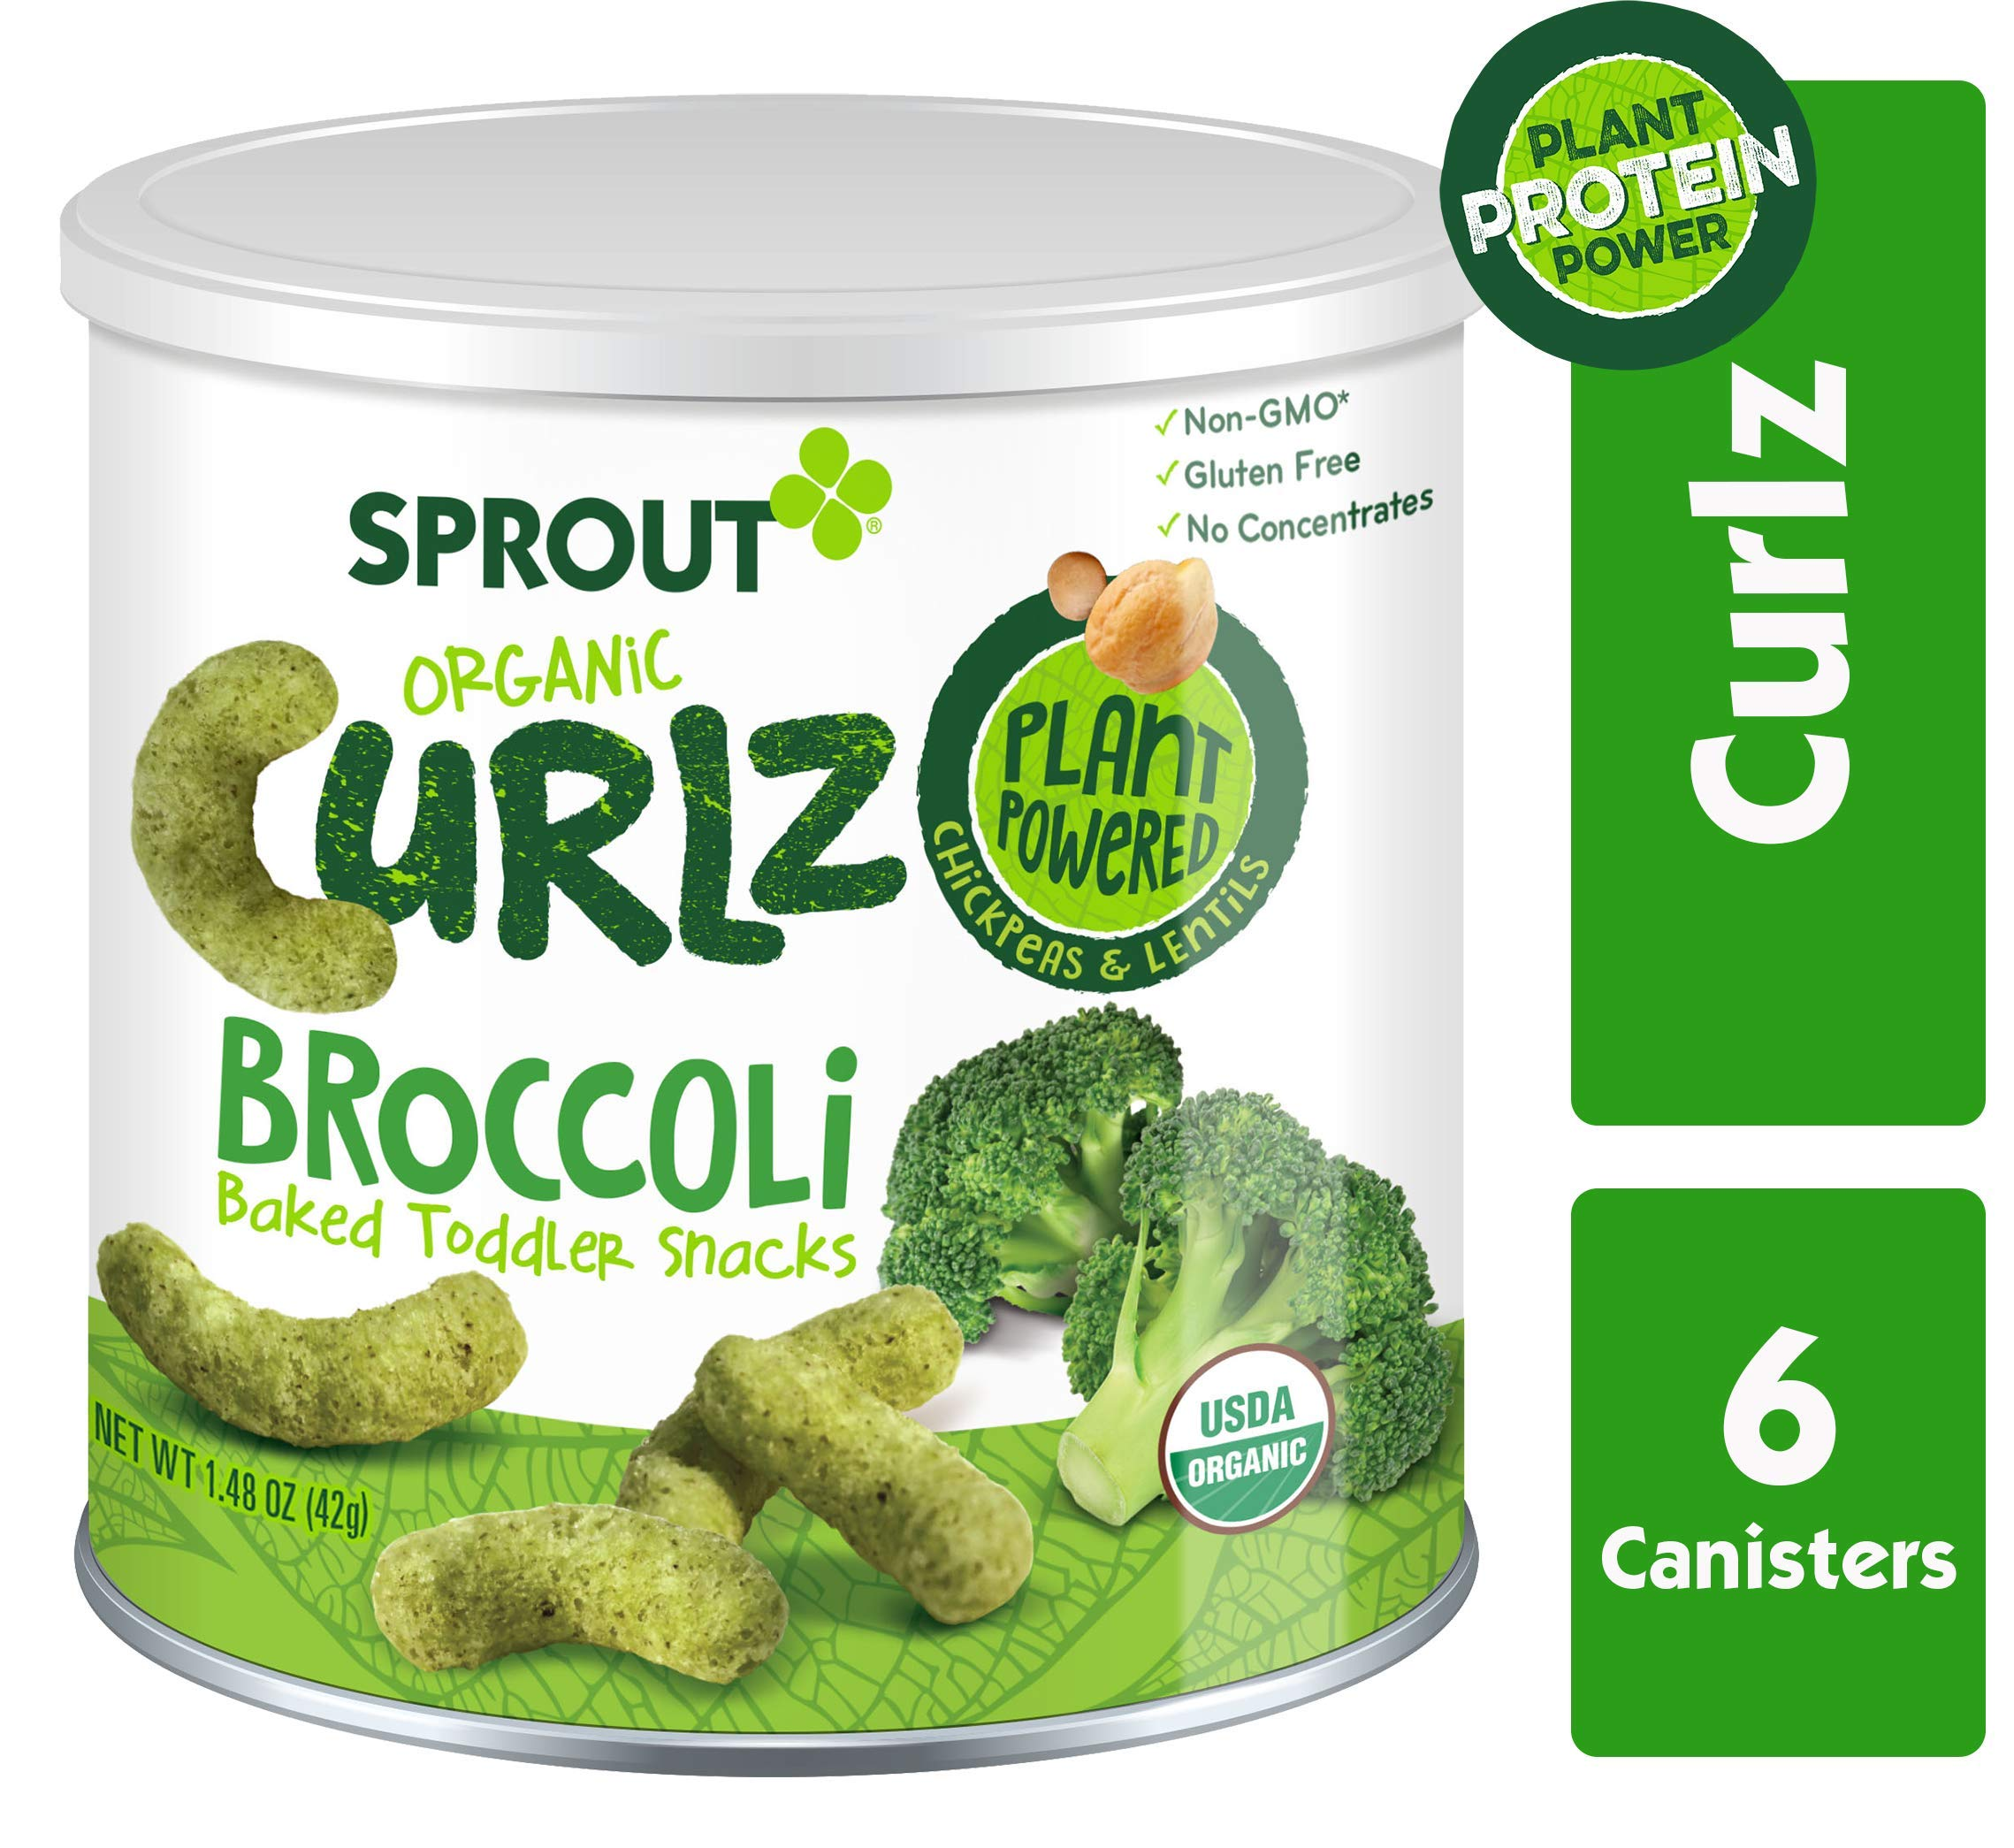 Sprout Organic Curlz Toddler Snacks, Broccoli, 1.48 Ounce (6 Count) Canister by Sprout